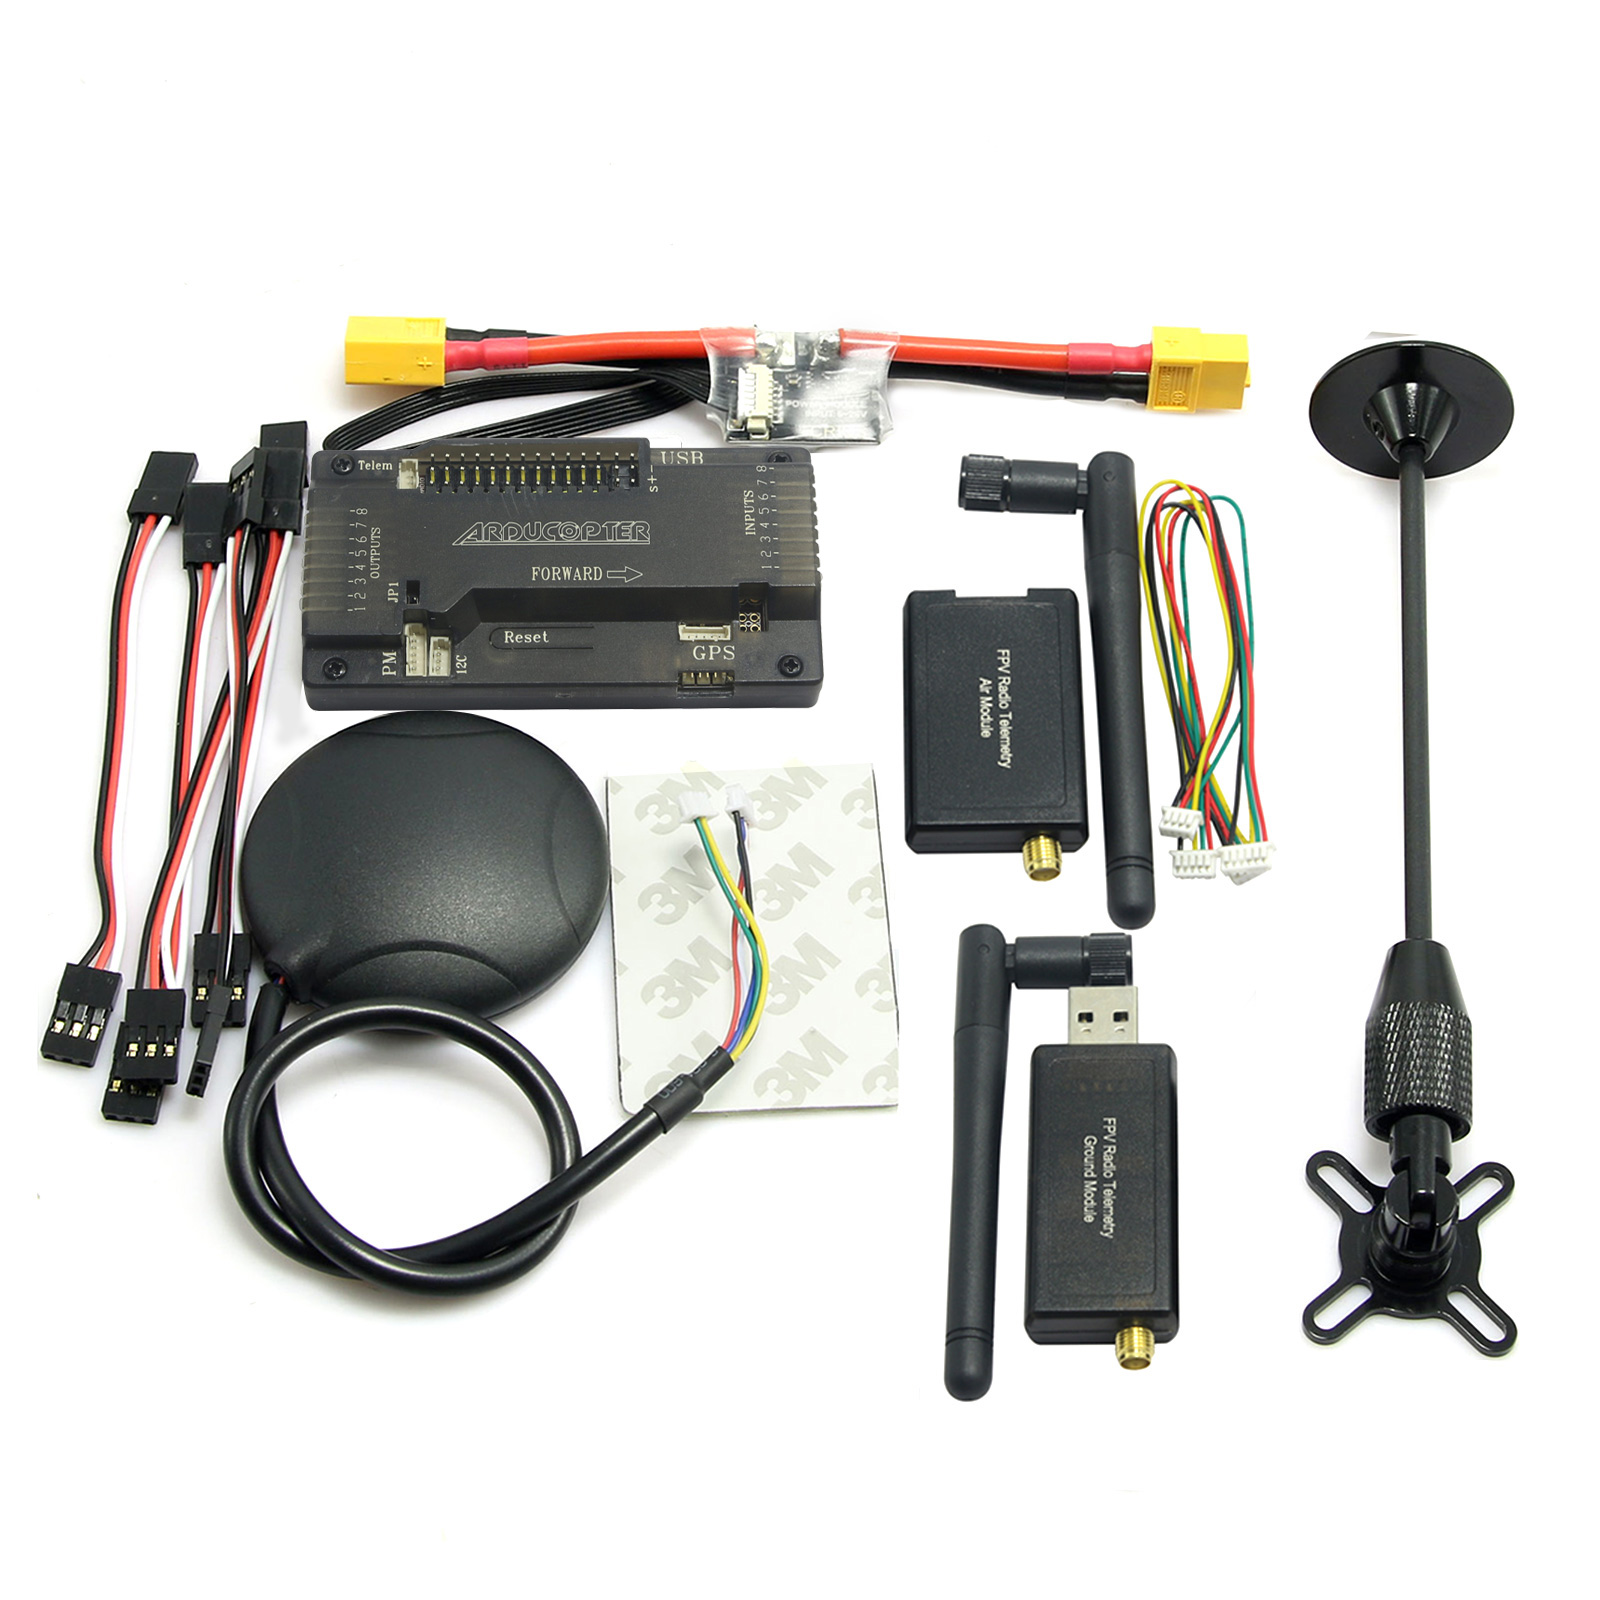 APM2.8 ArduPilot APM Flight Controller with M8N-GPS and 3DR Telemetry & XT60 Power for FPV Drone Multicopter apm 2 6 ardupilot flight controller gps 3dr radio telemetry minimosd current sensor